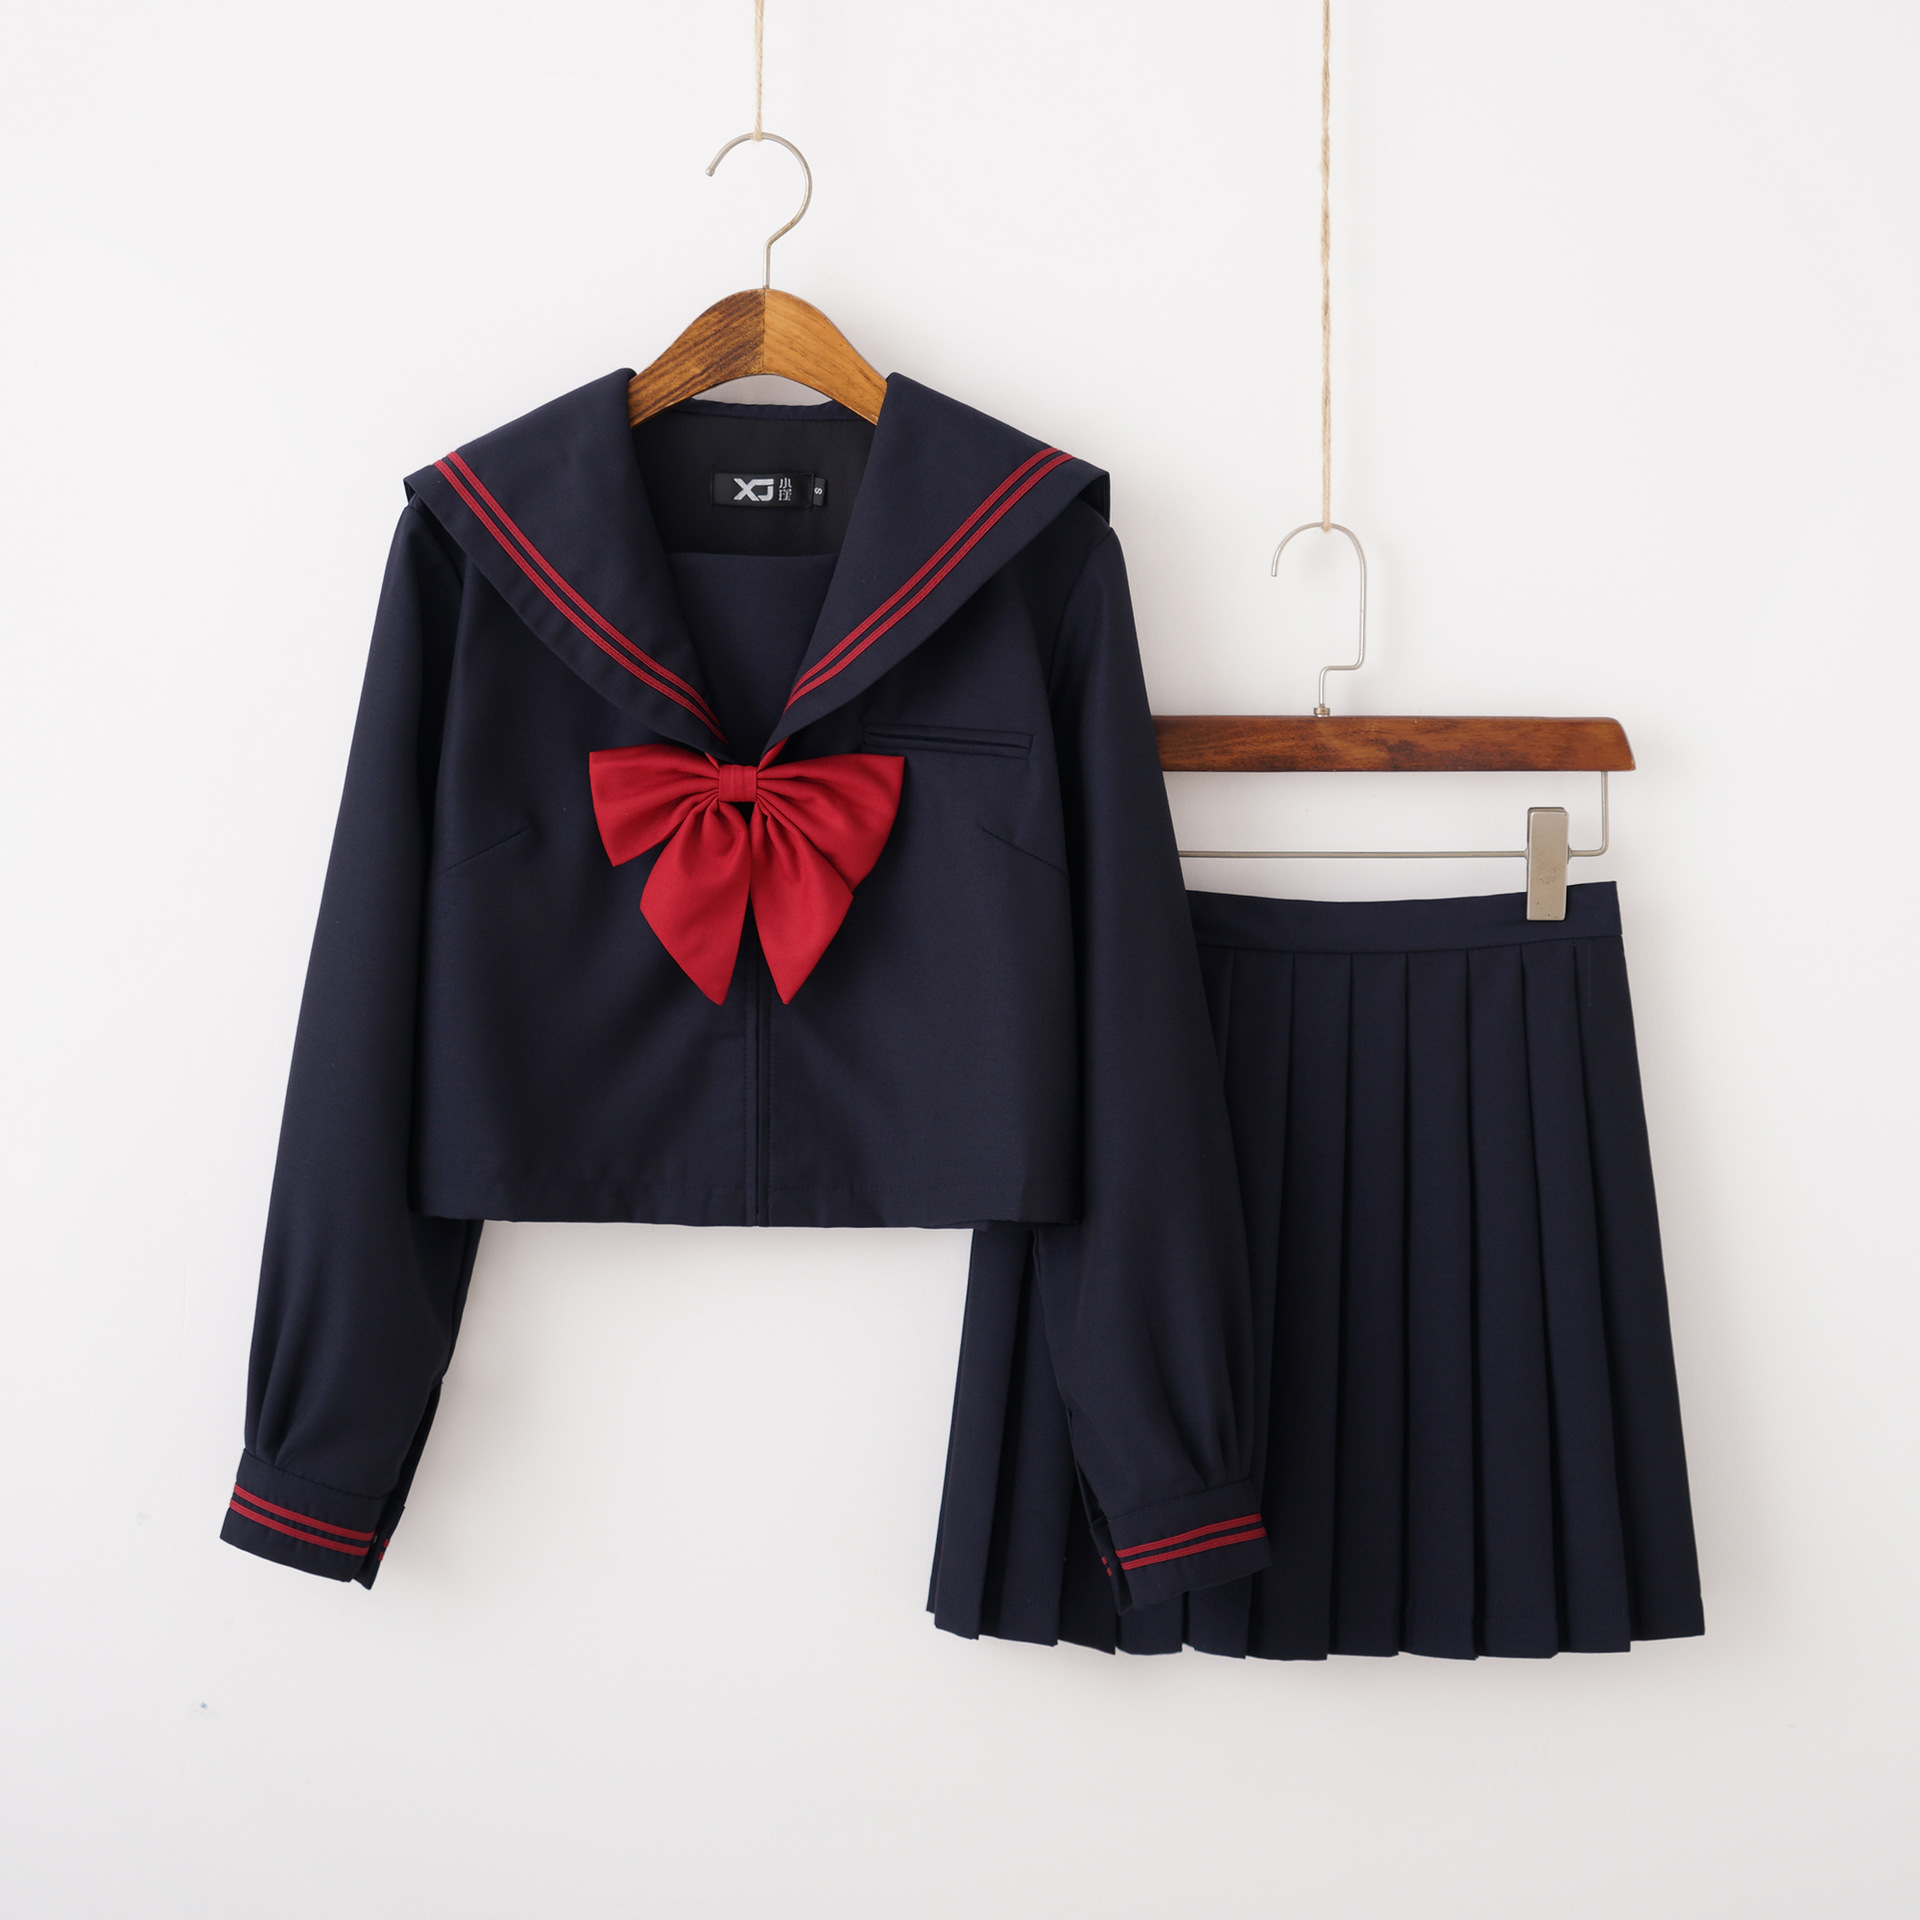 New Autumn Japanese Orthodox Jk School Uniform Girls Cute Sailor Suits Black Tops Pleated Skirt Red Bowtie Sets Cosplay Costume